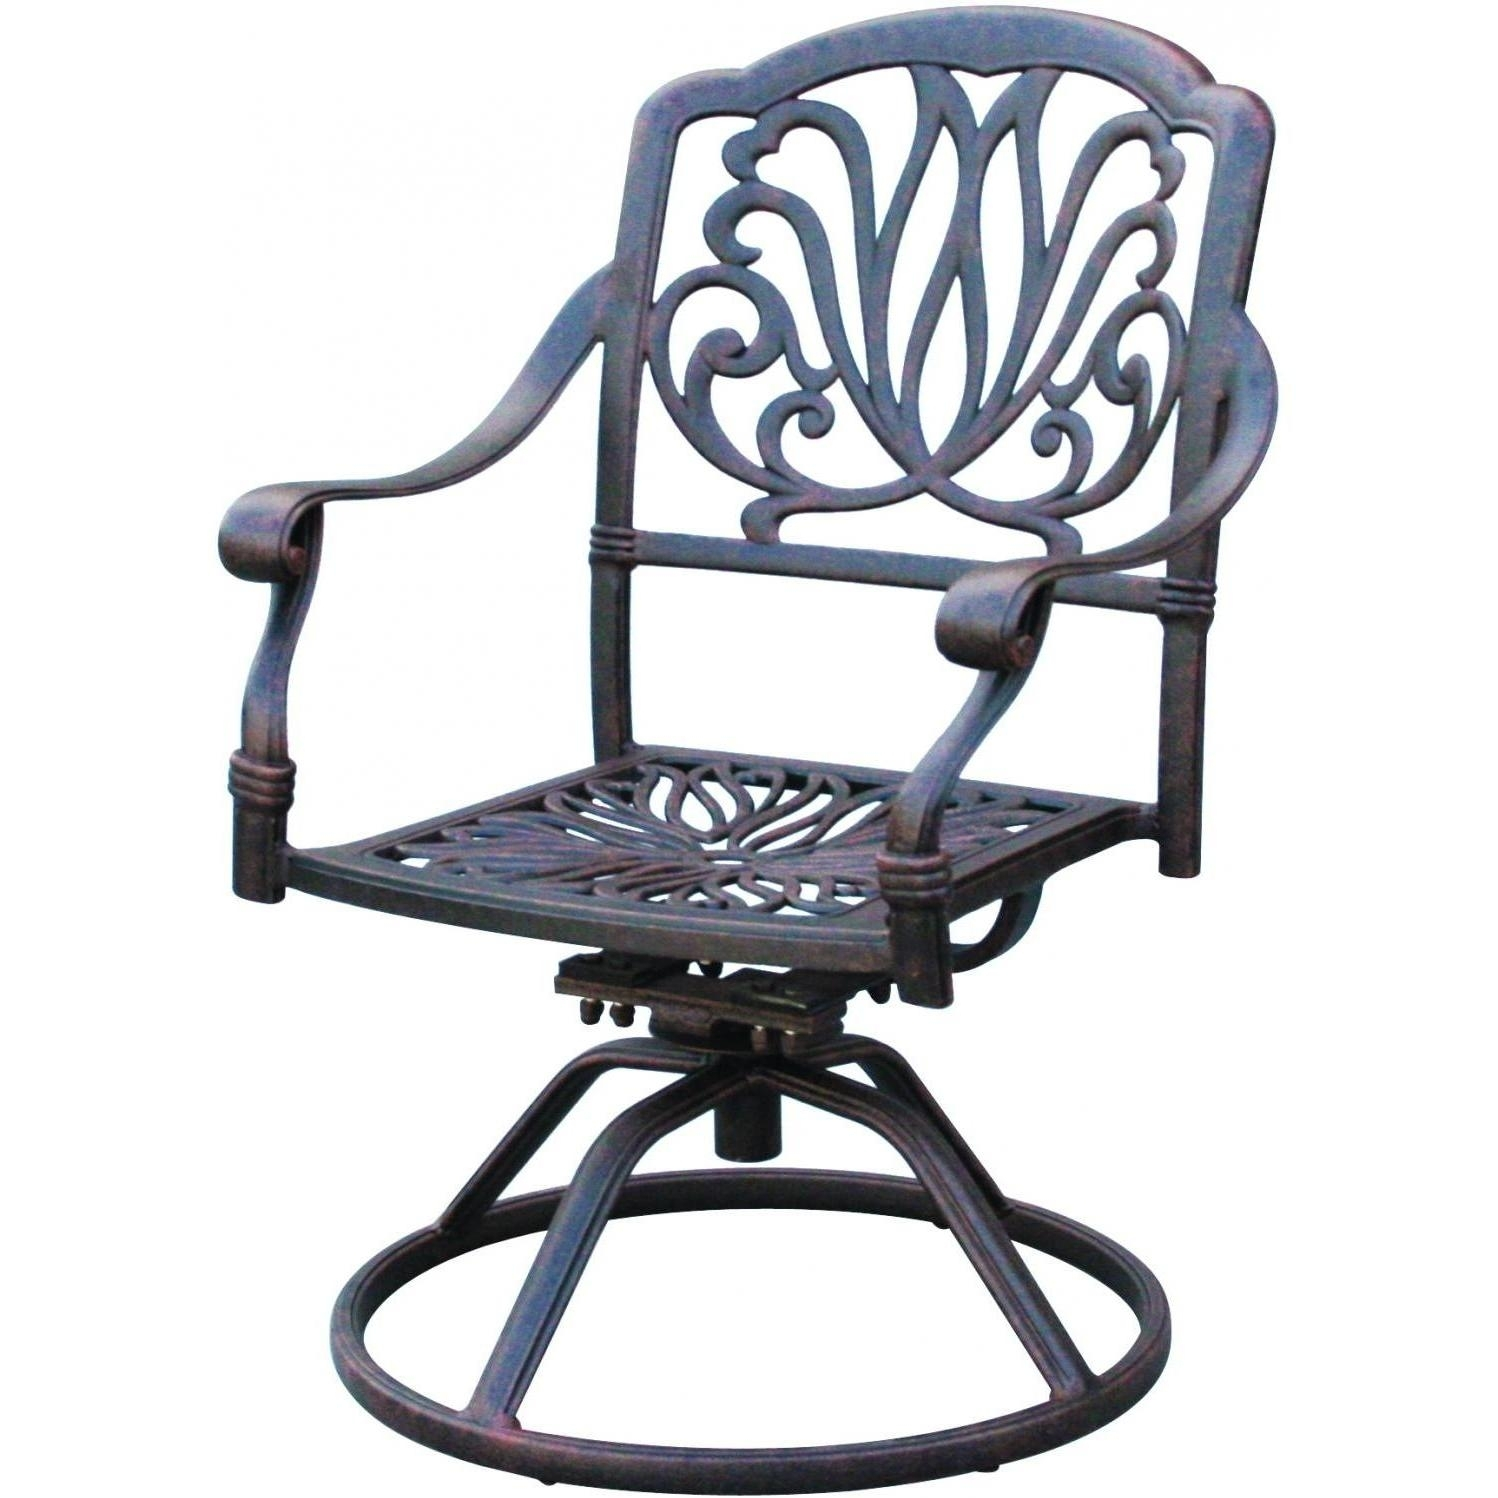 Black Wrought Iron Swivel Rocker Patio Chairs Using Black Wooden Within Iron Rocking Patio Chairs (#4 of 15)